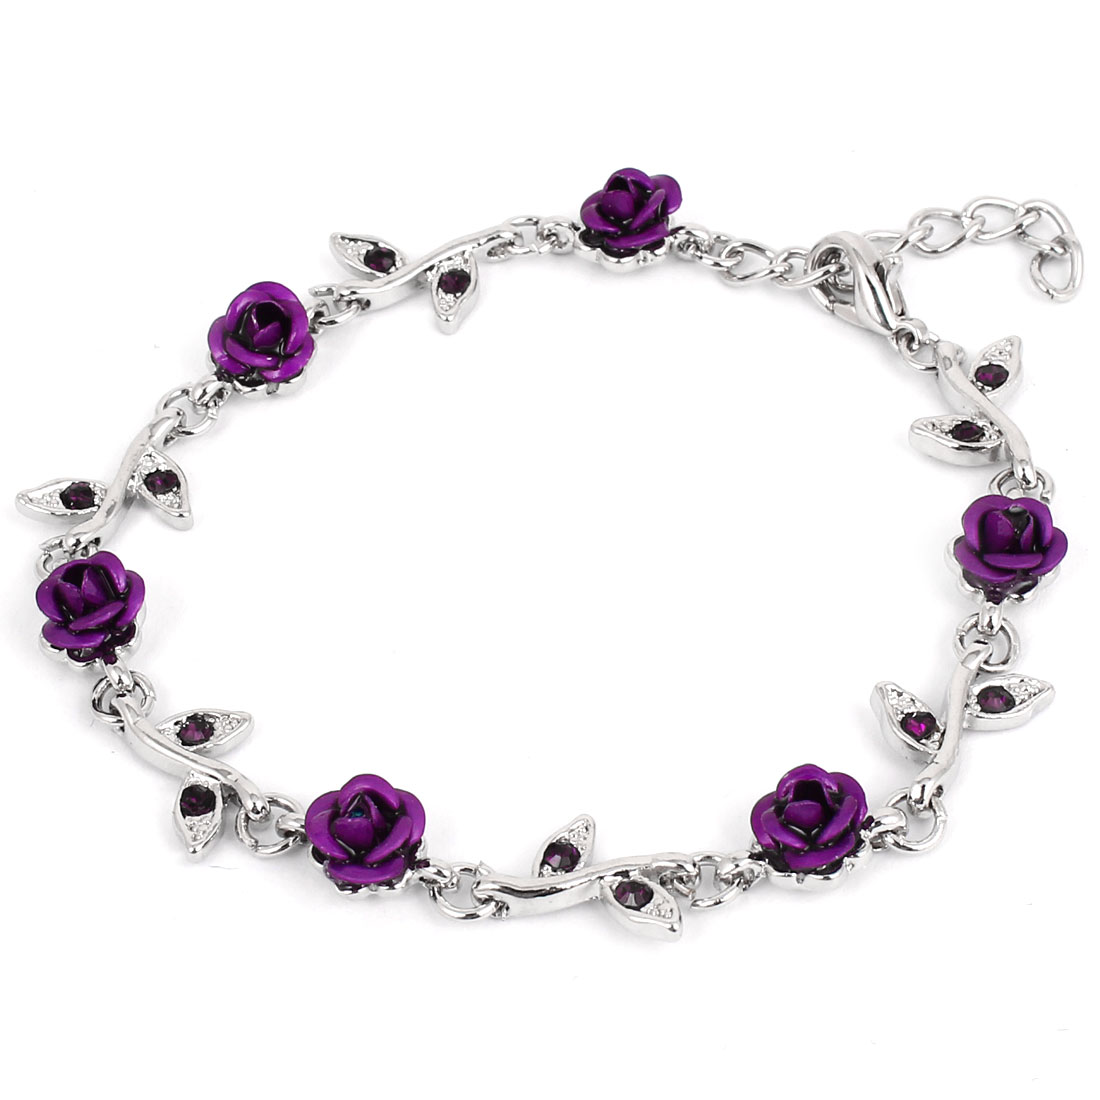 Lady Metal Roses Leaves Decor Adjustable Chain Wrist Bangle Bracelet Dark Purple